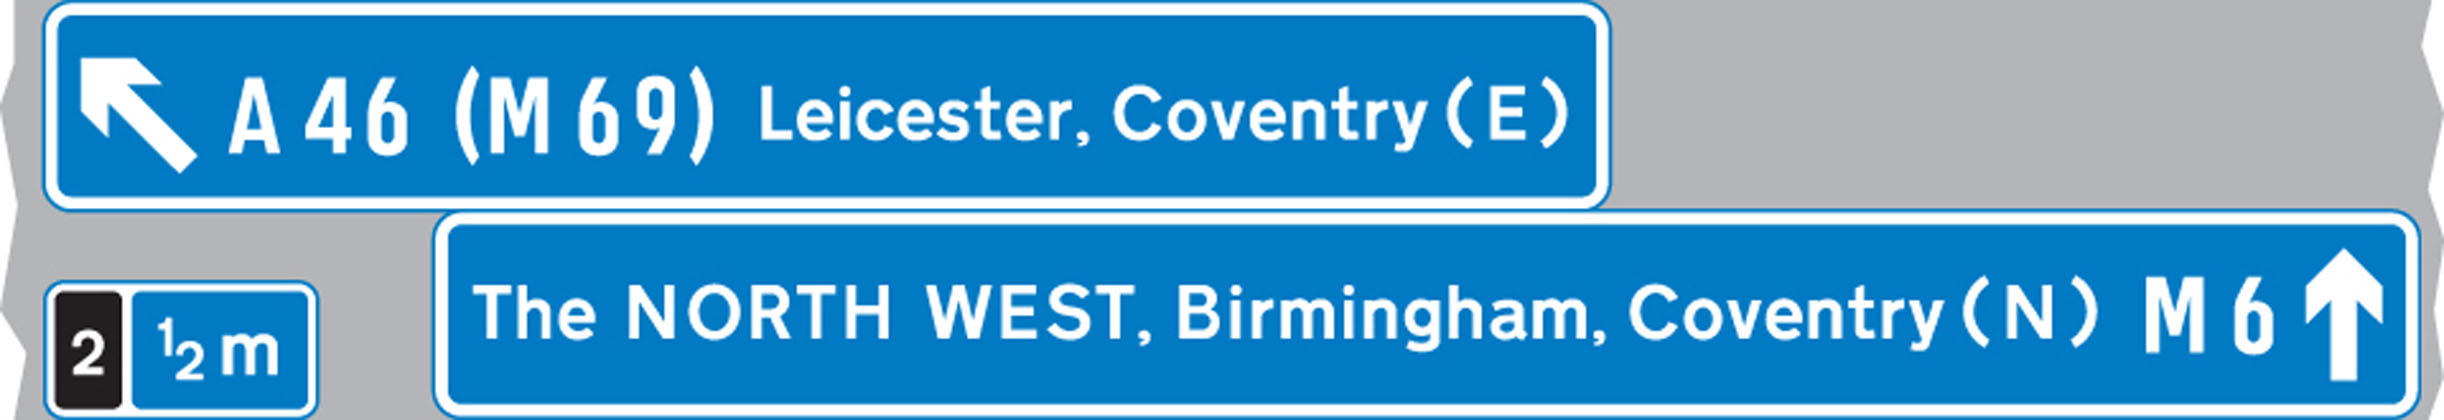 The panel with the inclined arrow indicates the destinations which can be reached by leaving the motorway at the next junction